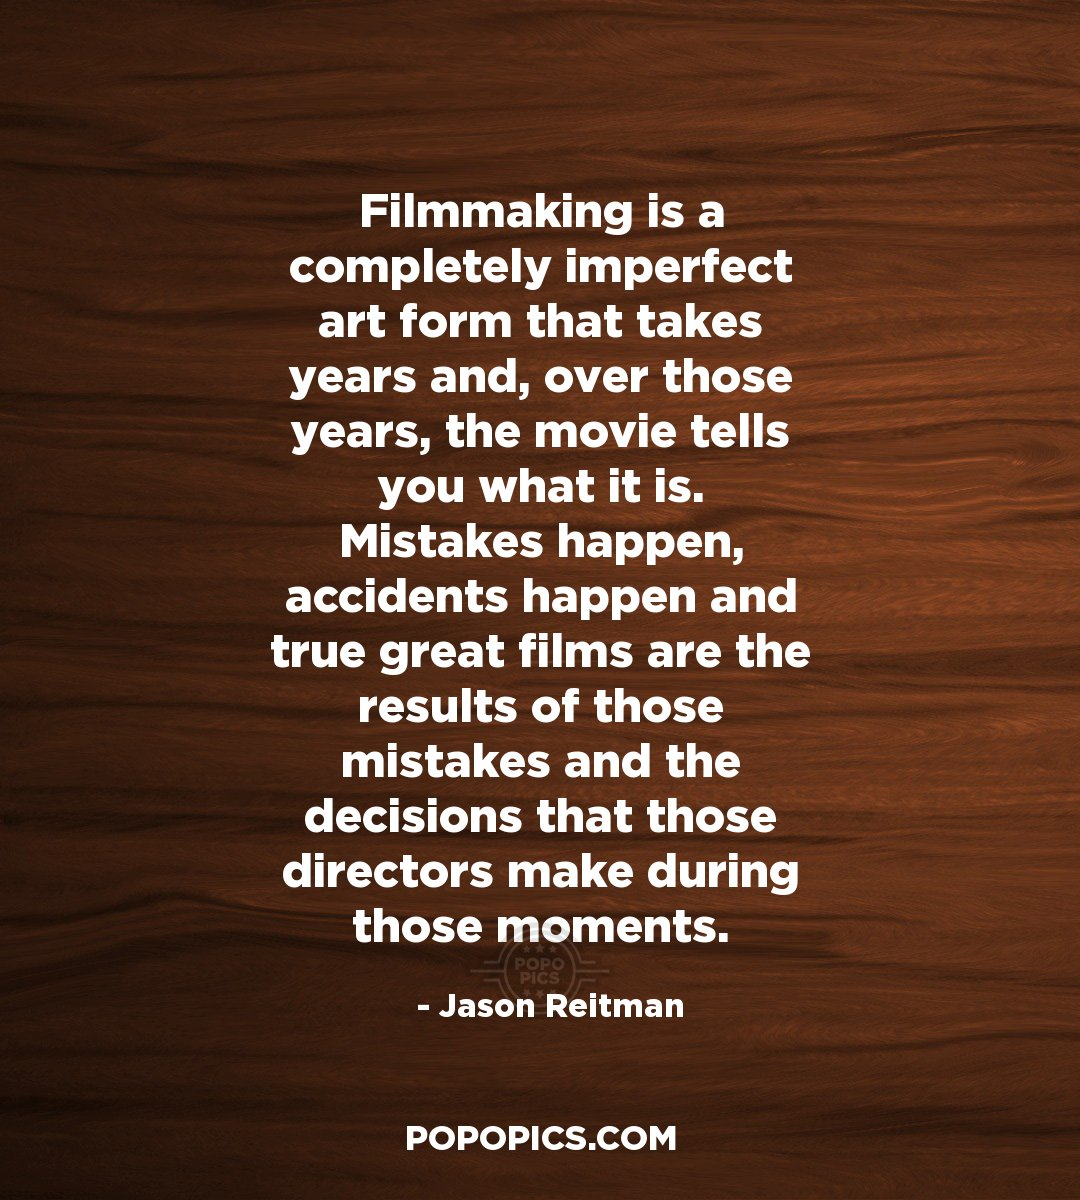 filmmaking is a completely imperfect art form quotes by jason